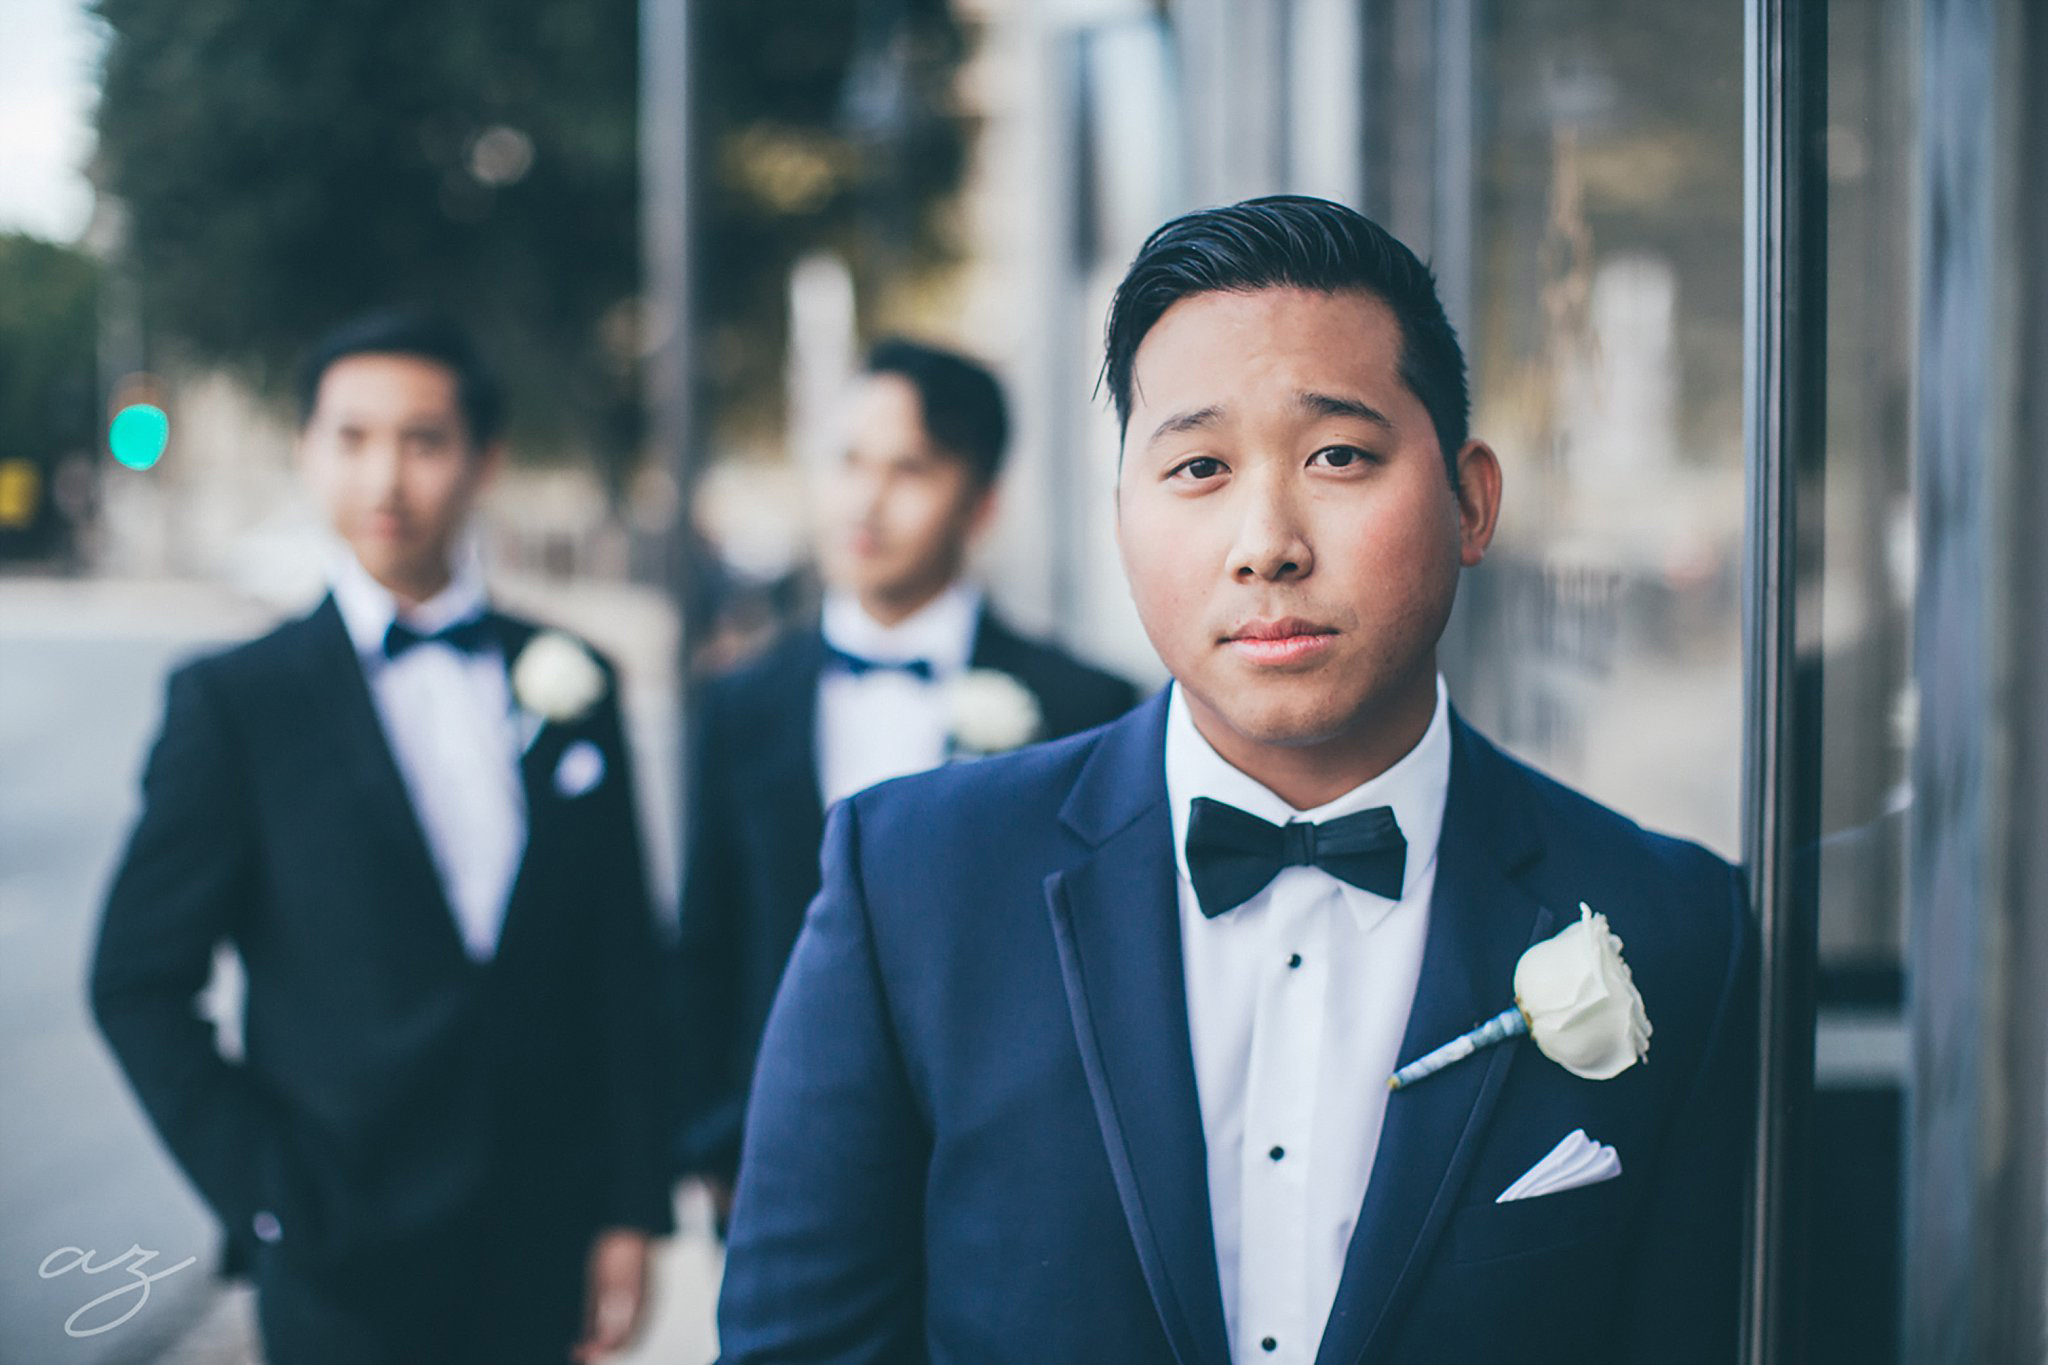 Carlisle Room wedding Groom in grey tux with white boutonniere